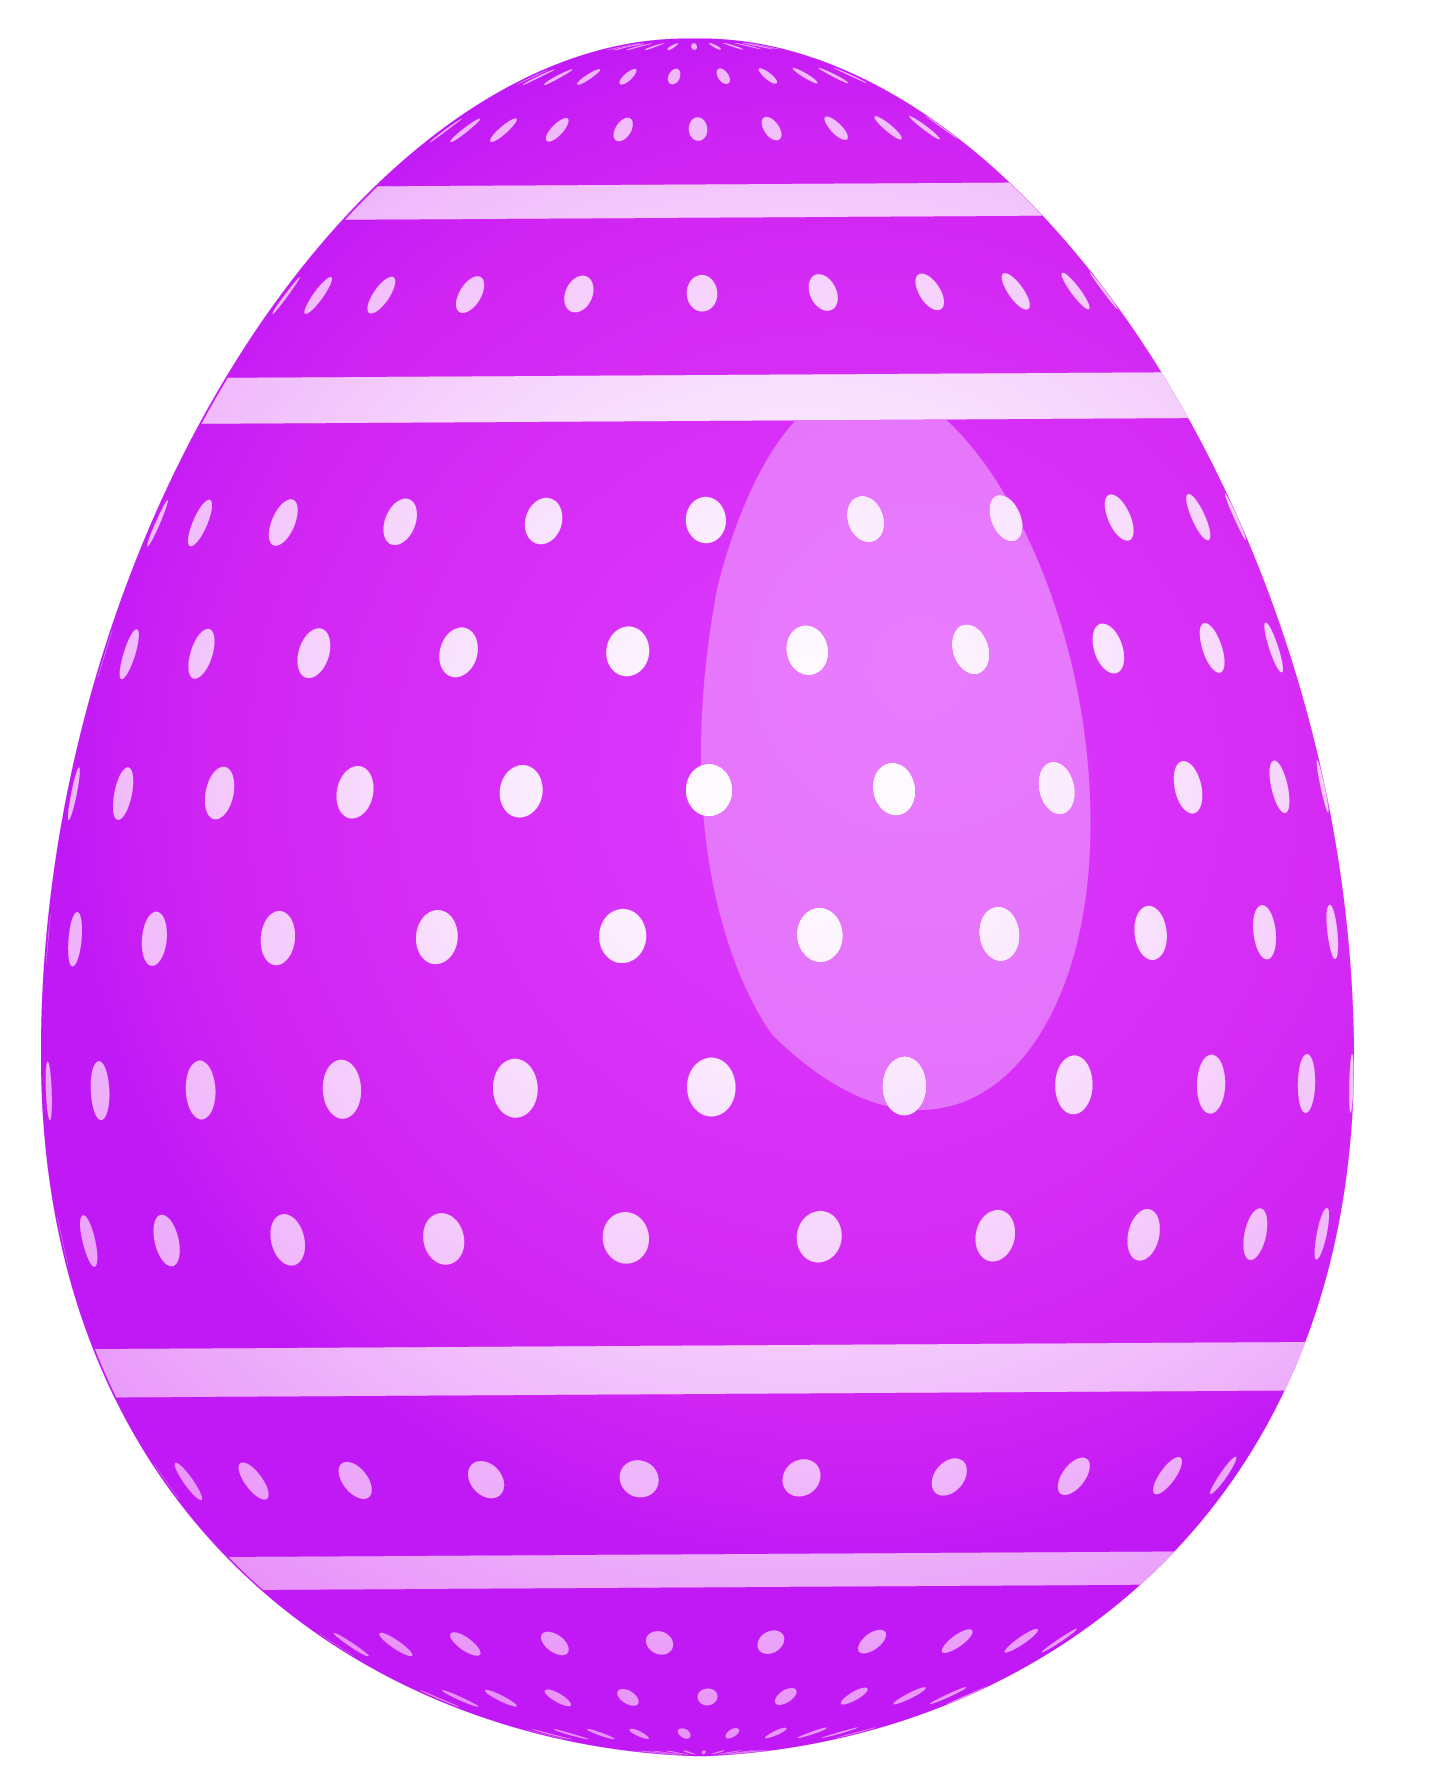 Shell clipart purple clipart. Dotted easter egg png